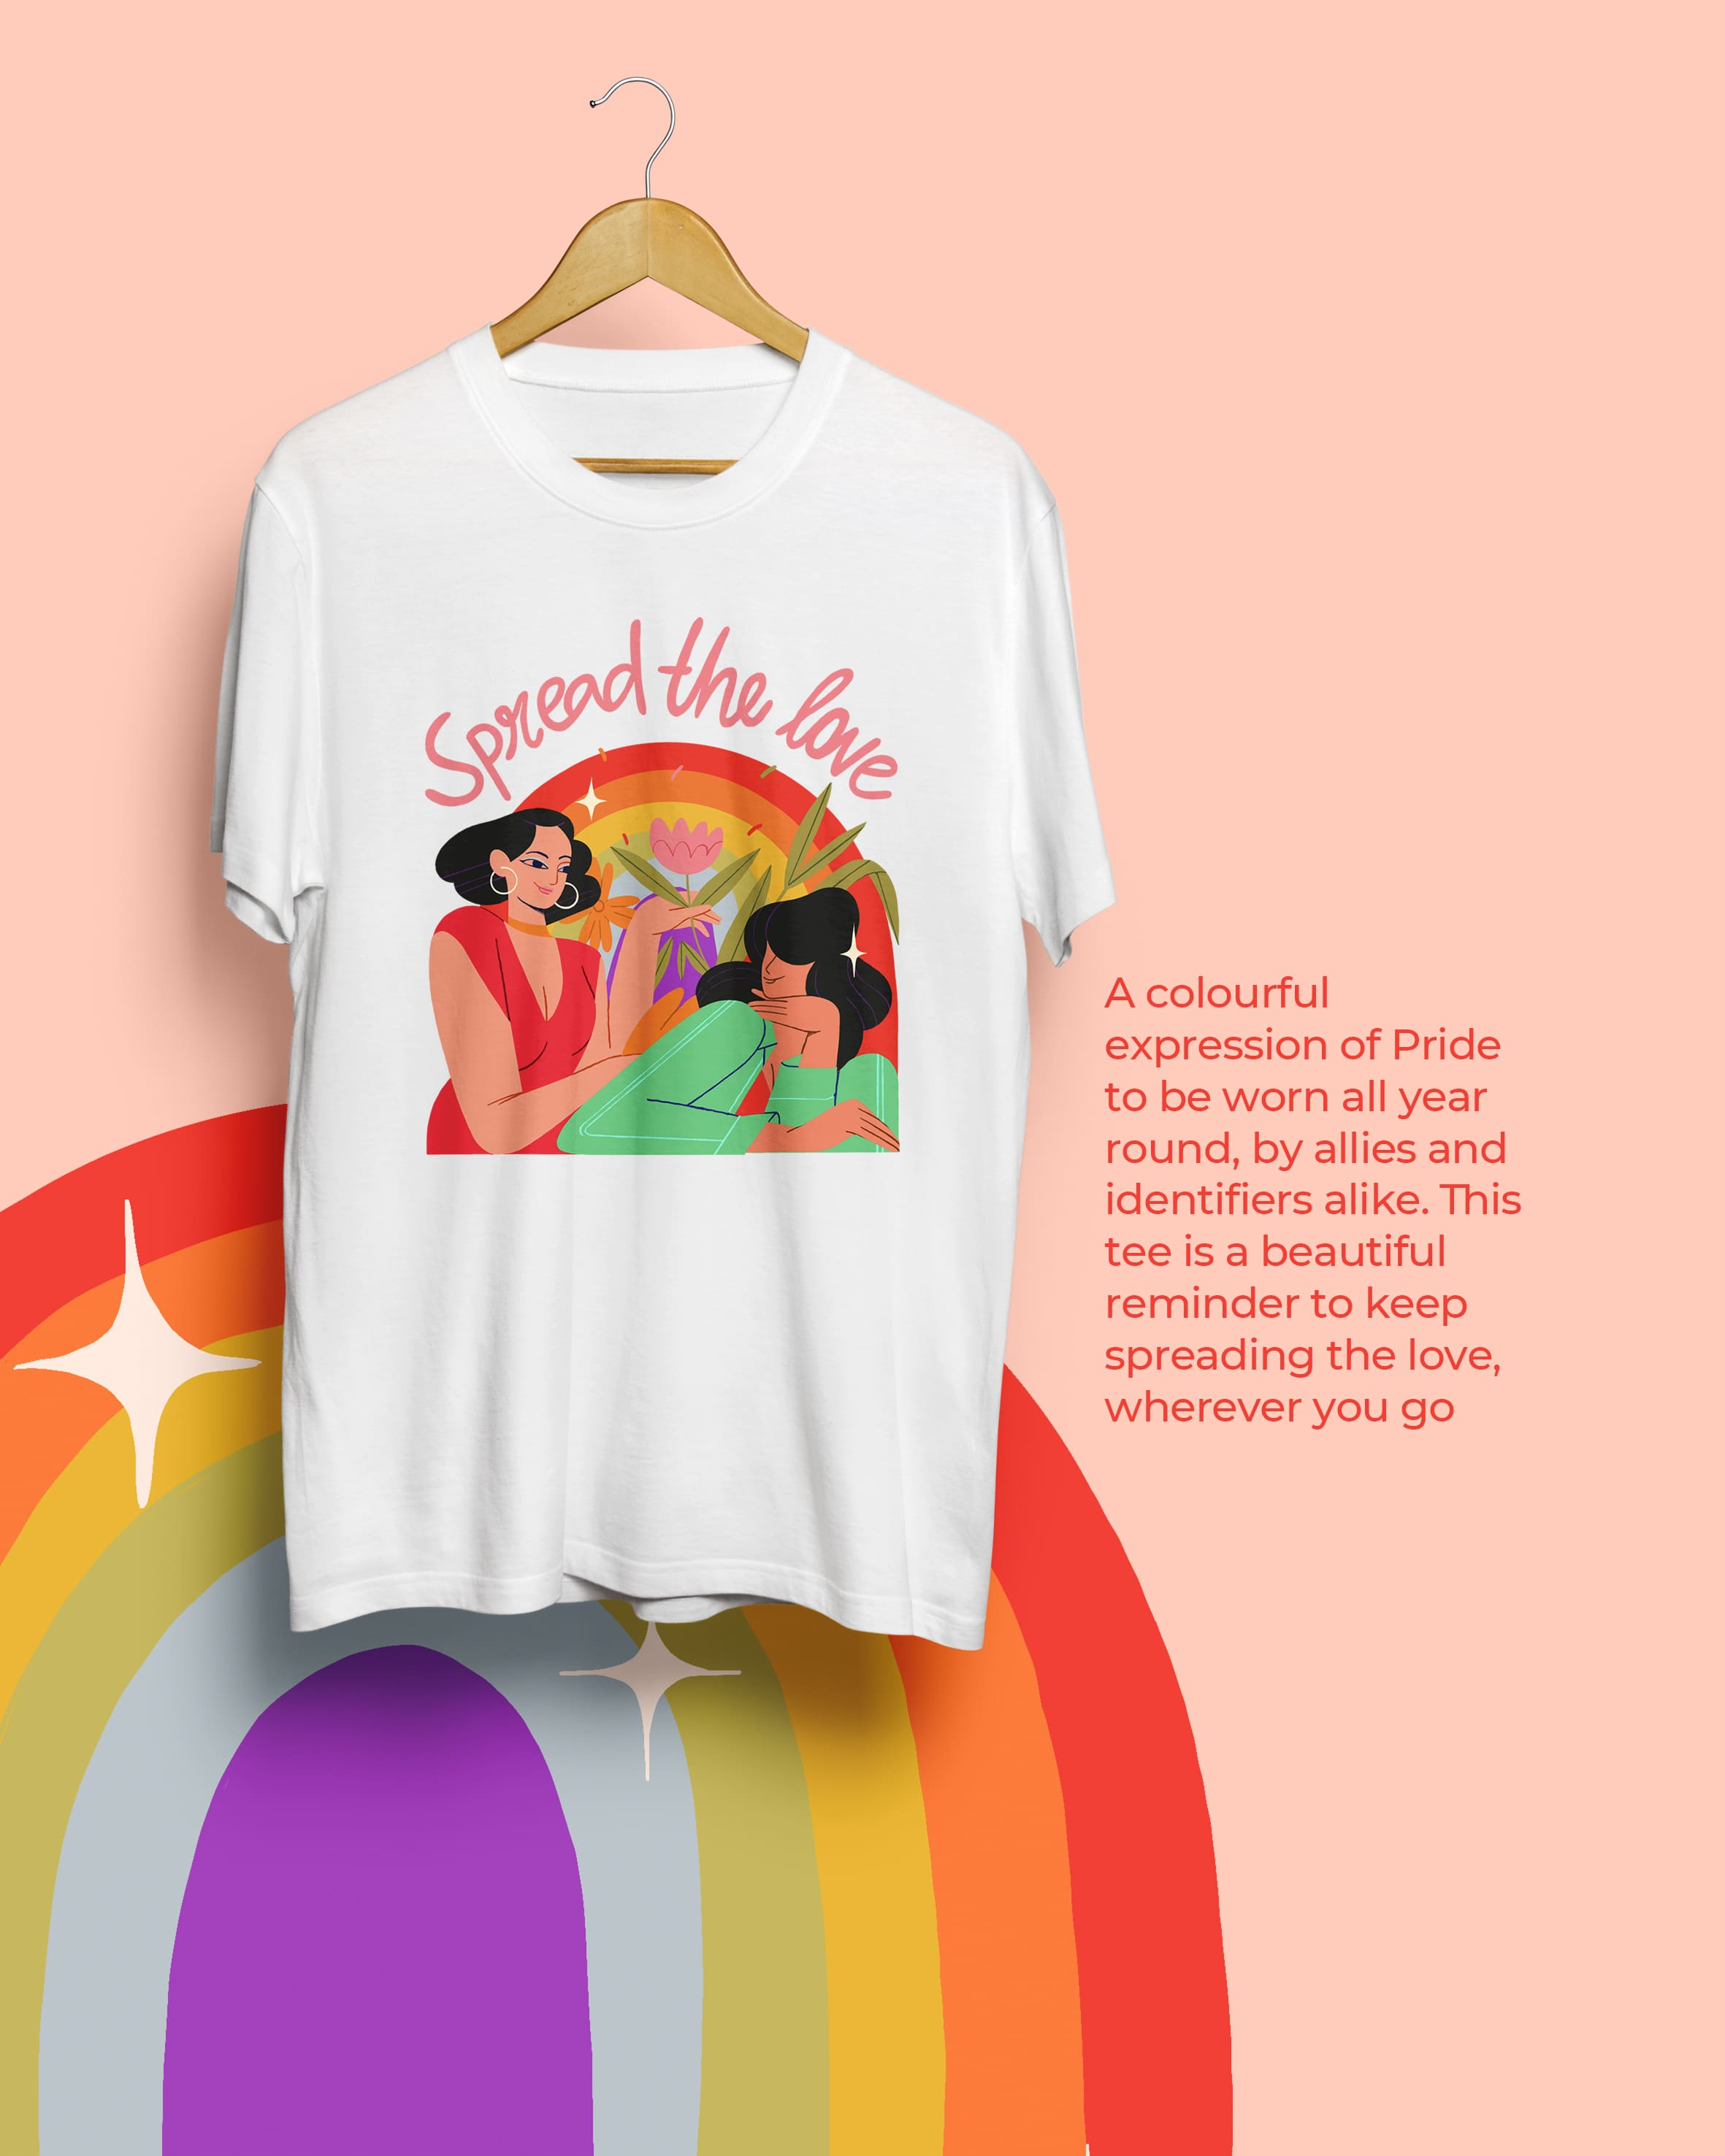 The Spread the Love t-shirt design by MyMuse x Fighting Fame in the background with an illustration of the design in the foreground